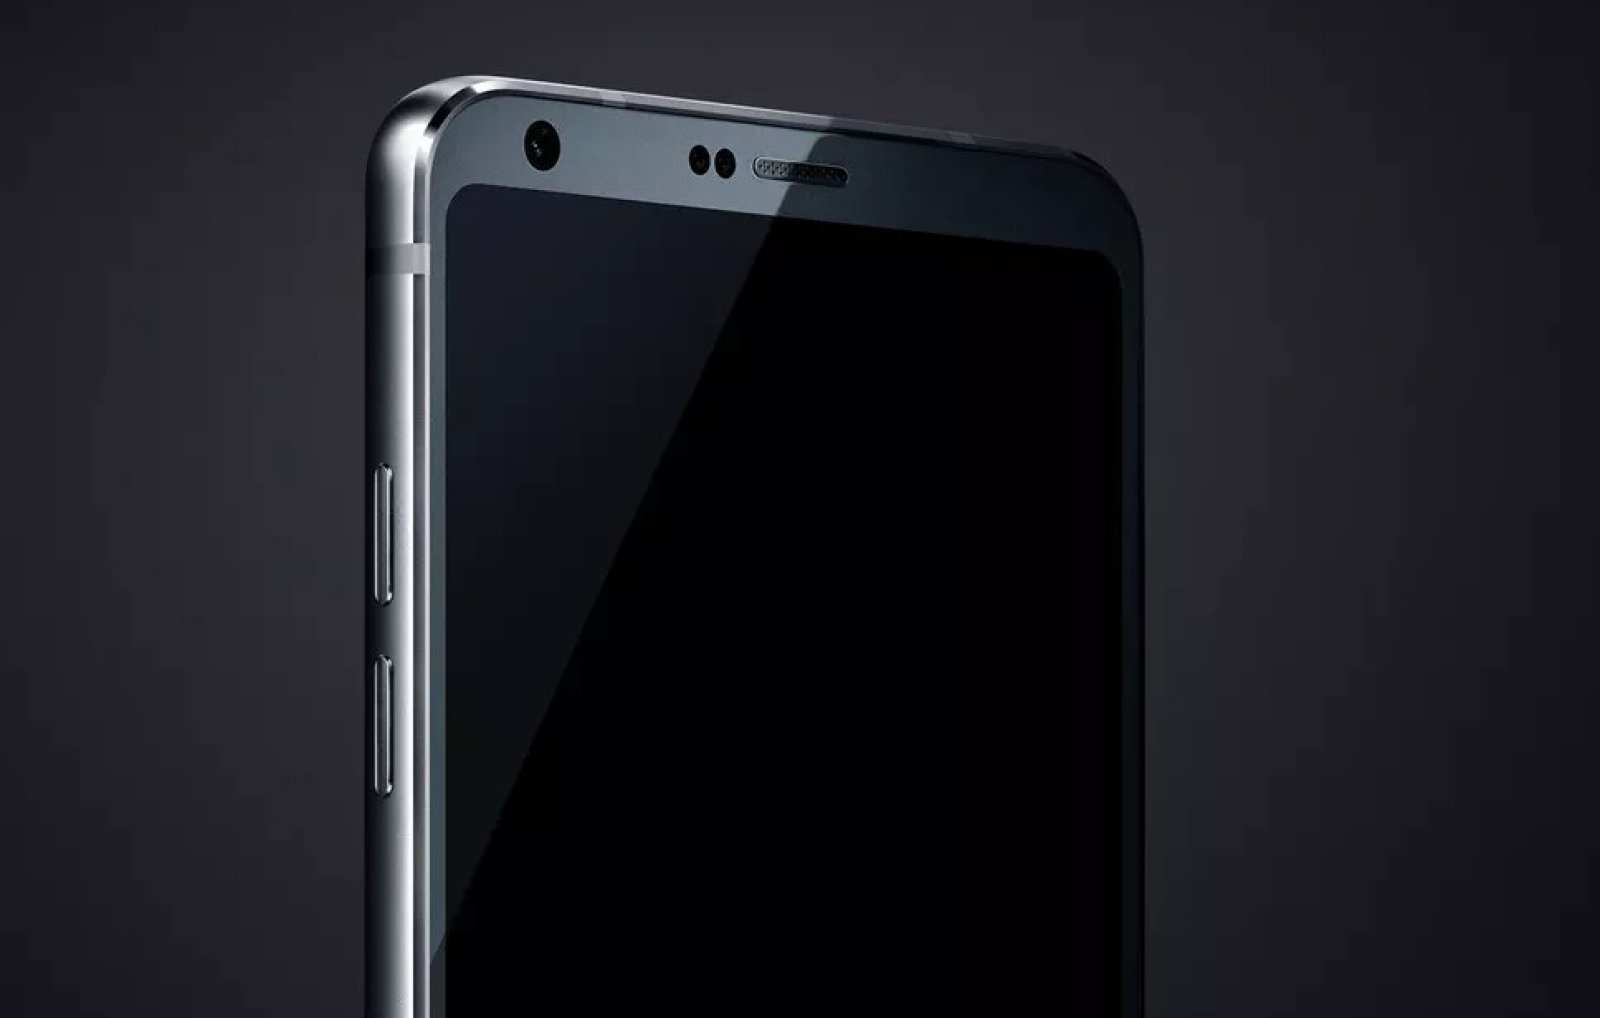 Better Sound From LG G6 With Quad-DAC